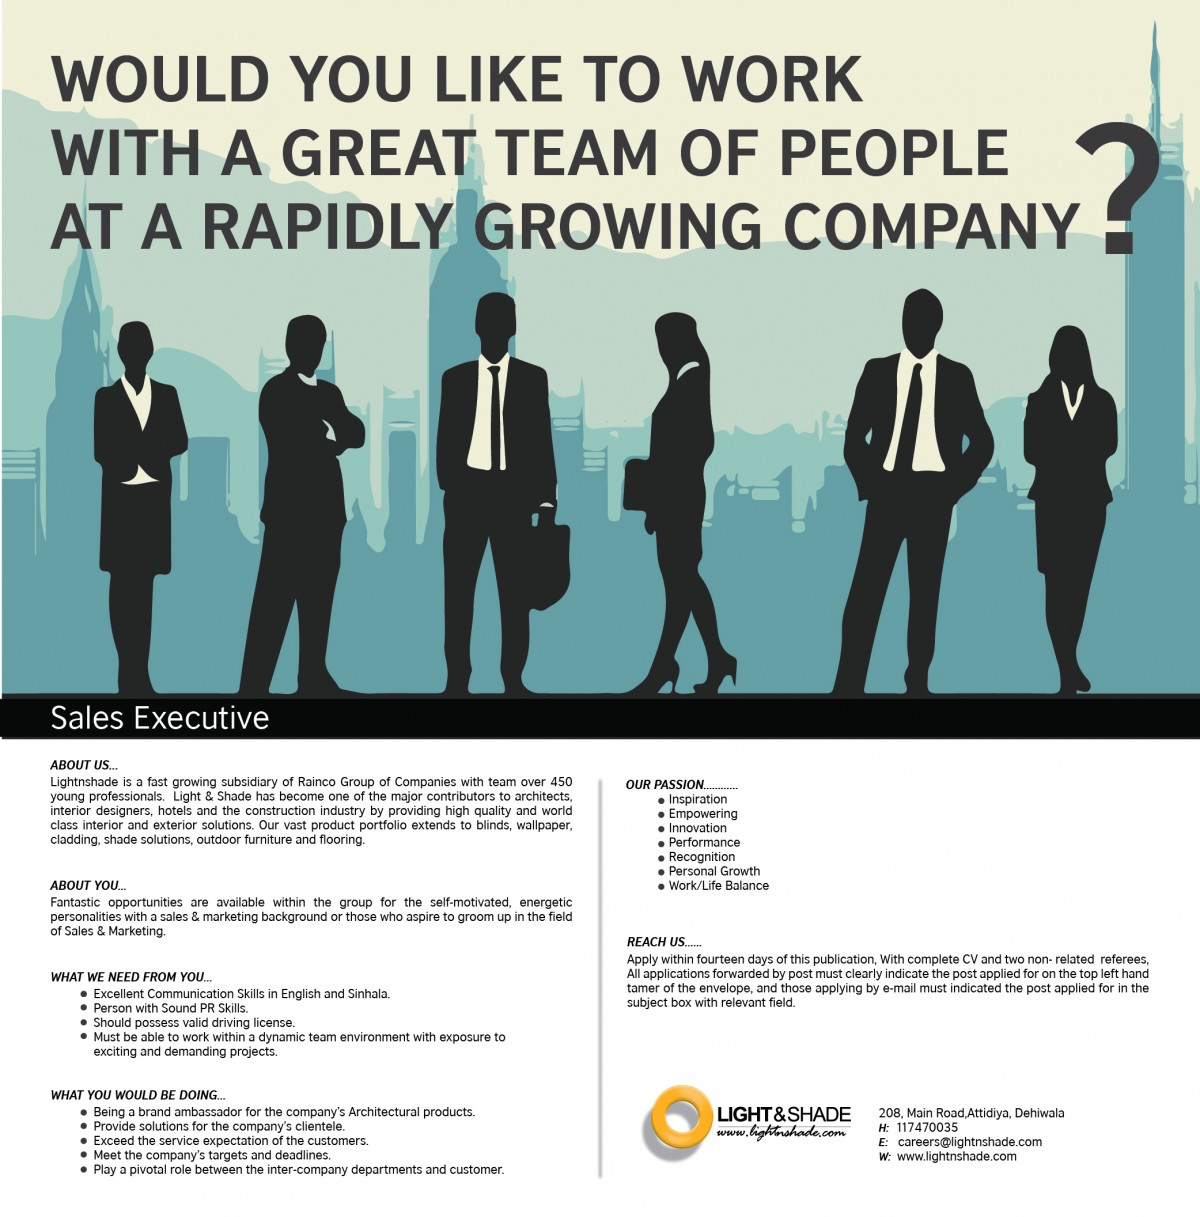 s executive job vacancy in sri lanka fantastic opportunities are available in the group for the self motivated energetic personalities a s 8 marketing background or those who